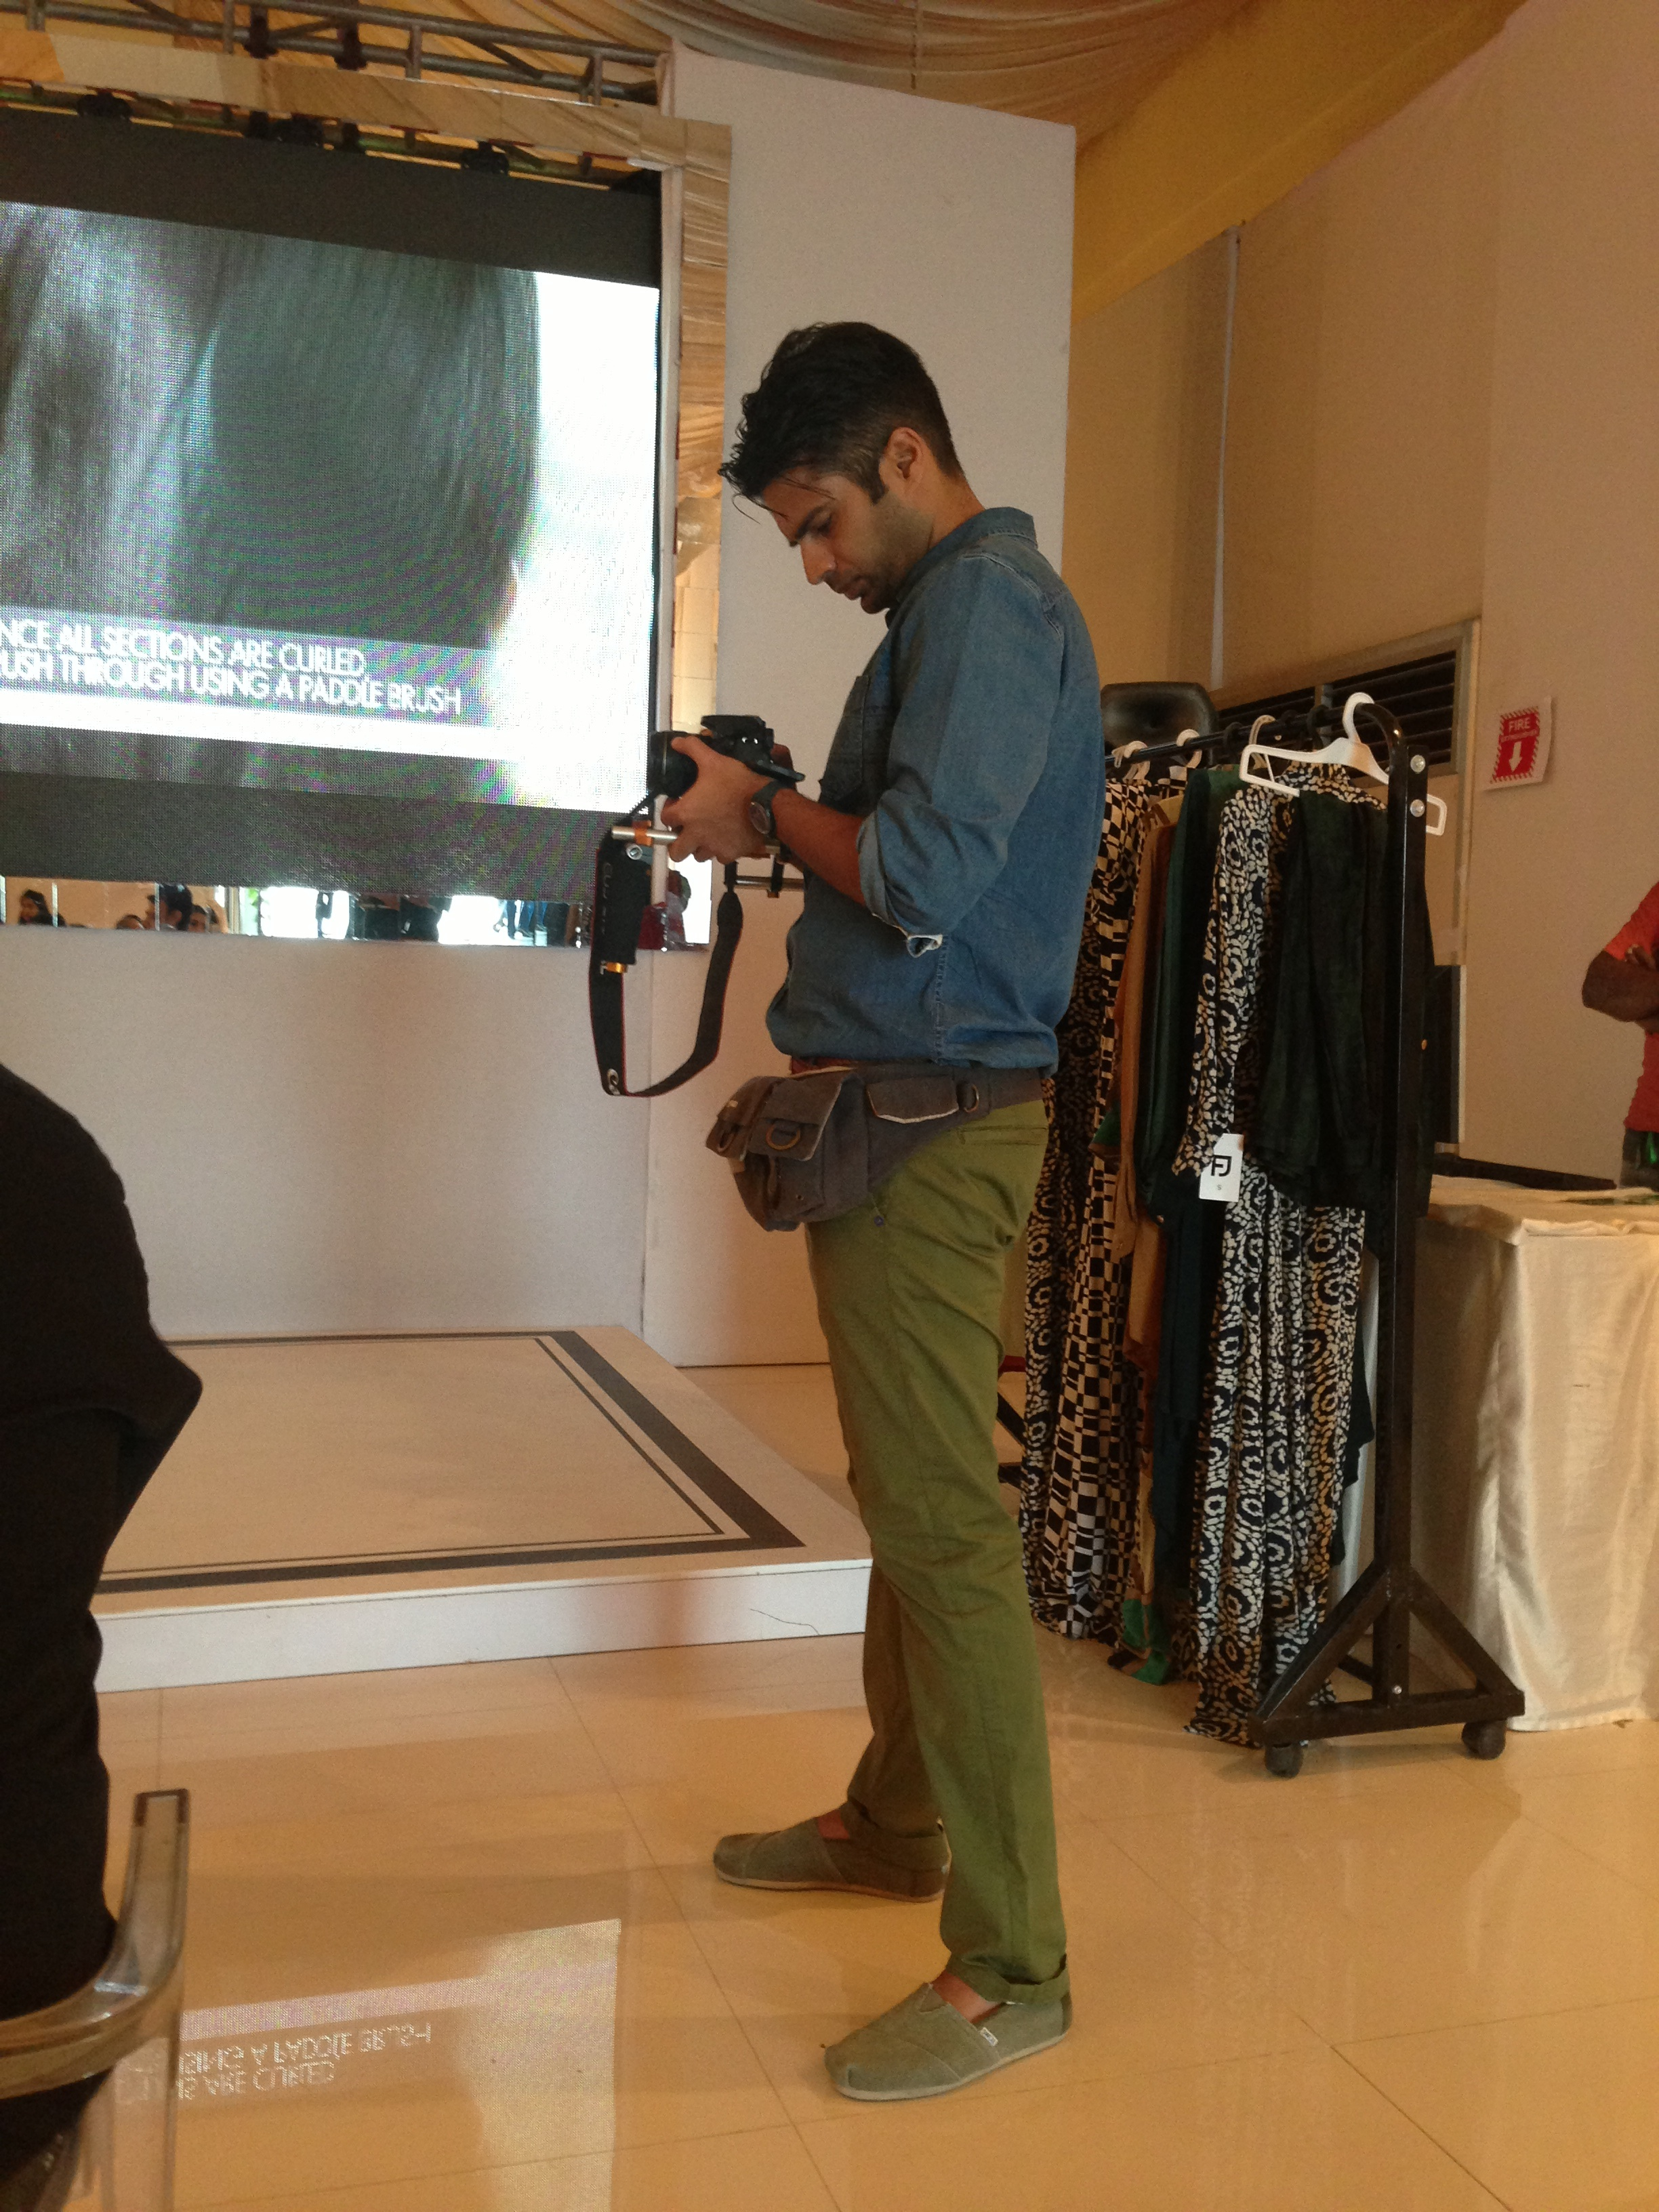 Adnan Malik busy making videos. Can't wait to see the final cut!